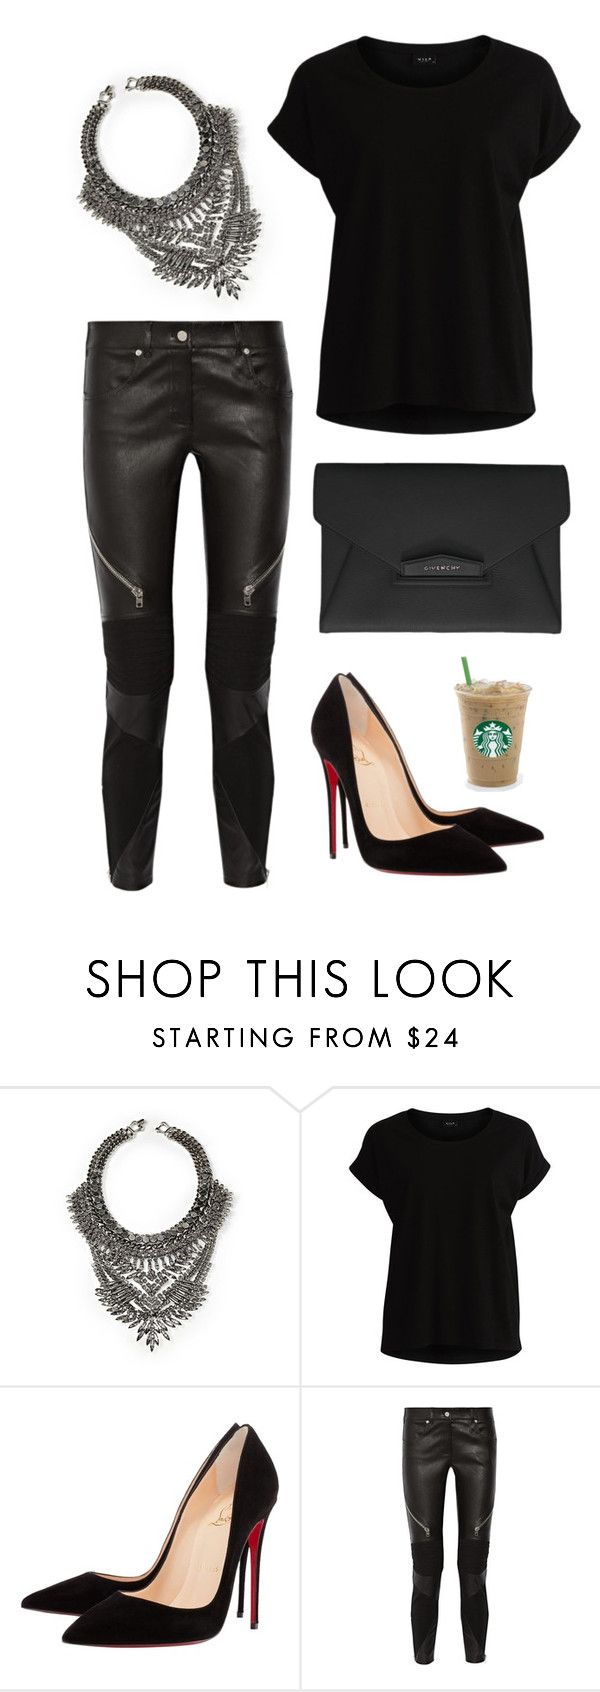 """""""Untitled #154"""" by mpxxi ❤ liked on Polyvore featuring DYLANLEX, VILA, Christian Louboutin and Givenchy"""